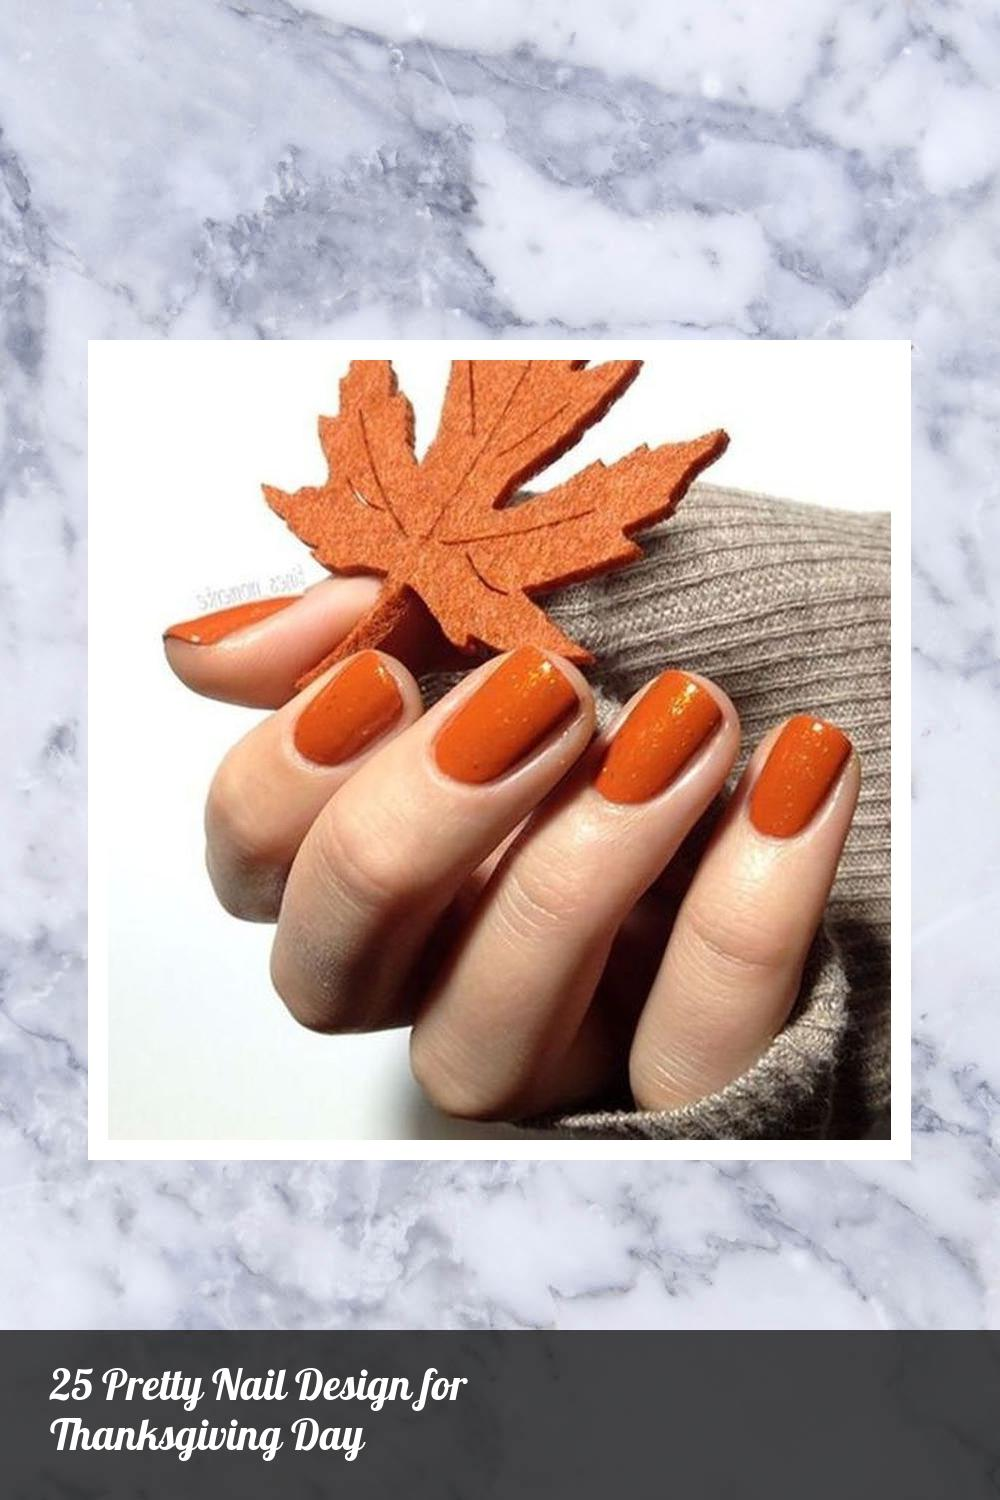 25 Pretty Nail Design for Thanksgiving Day 15